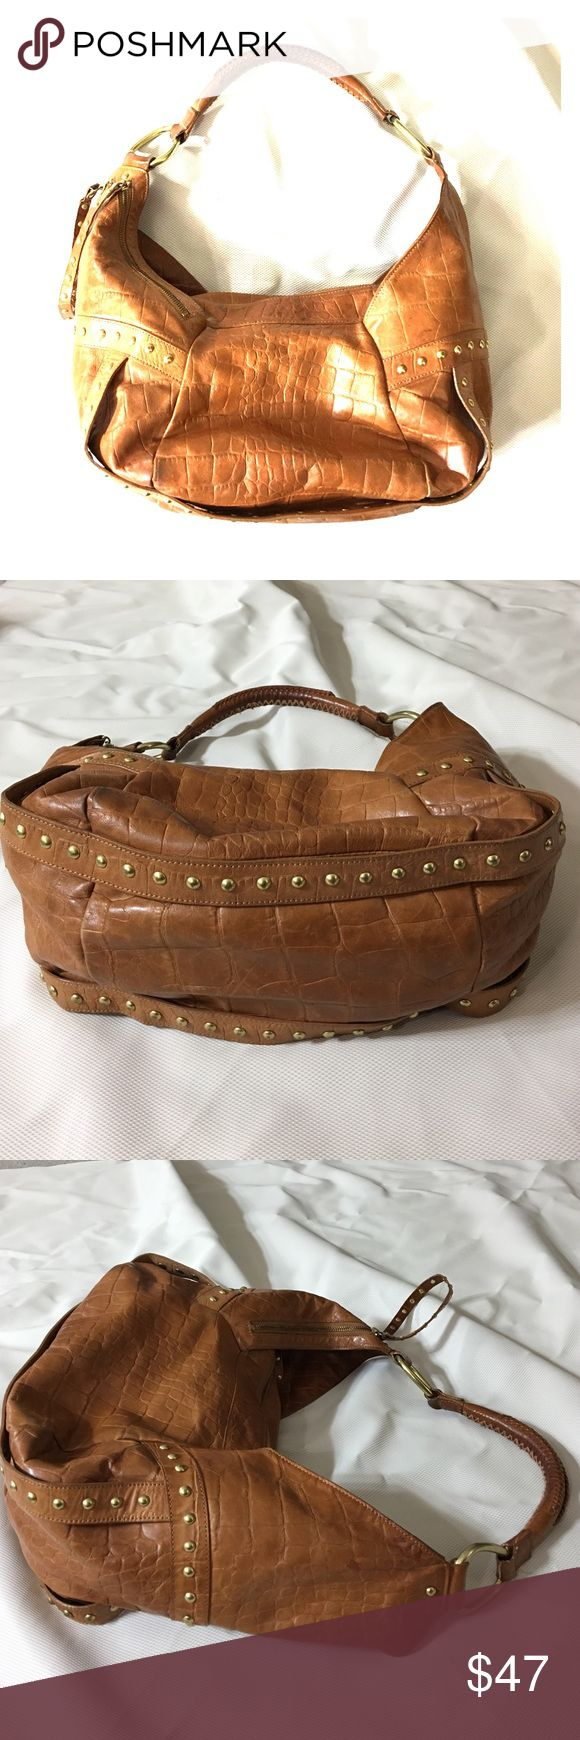 Kenneth Cole tan gold leather hobo  large purse Kenneth cole leather and gold purse large size very nice with an outside compartment for a cell phone or wallet two small compartments inside and one zippered compartment with a keychain very nice bag very well-made non-smoking home fast still livery at an excellent price get it today Kenneth Cole Bags Hobos